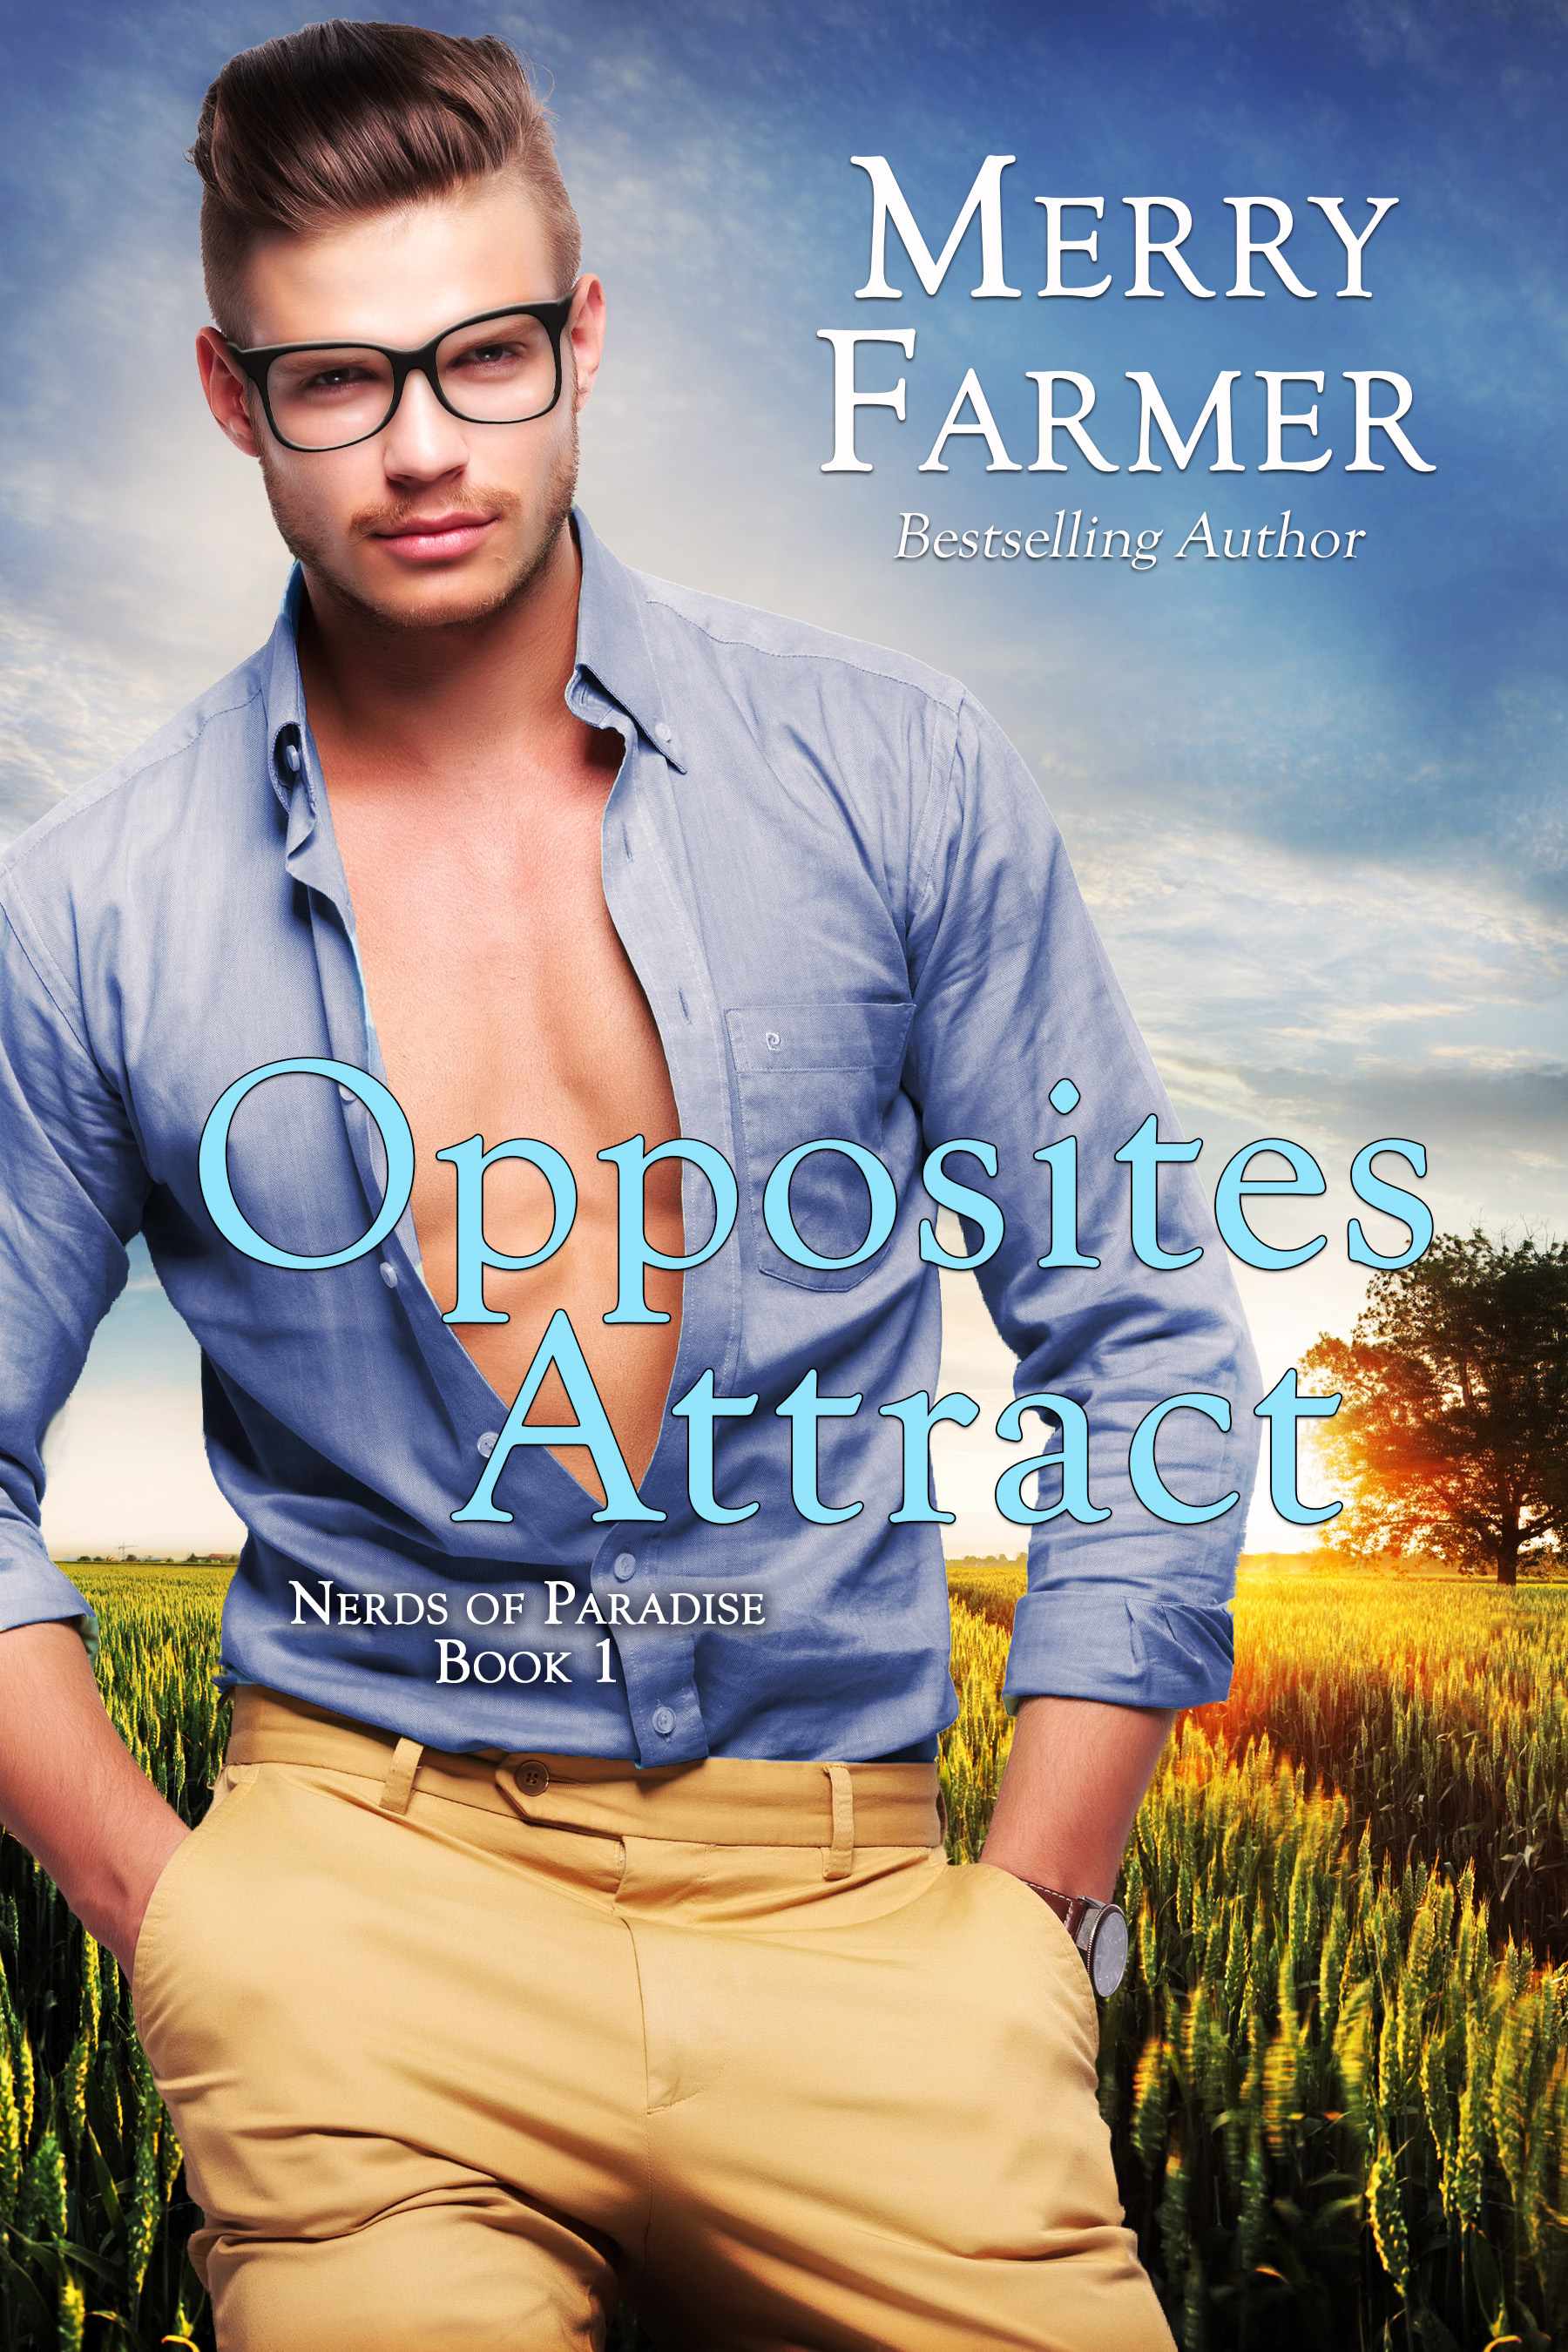 Opposites Attract (Book 1) - Haskell, Wyoming has a rich and vibrant history, dating back to the Old West. But with the opening of Paradise Space Flight, an aeronautics company and brain-child of Howard Franklin Haskell IV, the entire town is looking to the future. All except cowgirl, Casey Flint. Daughter of one of the original Paradise Ranch families, Casey is reeling from all of the change in her hometown. Even more so when project manager Scott Martin moves into town and turns her world upside down.Scott is more than ready to embrace the quieter pace of life that Haskell represents while helping a new and exciting company to launch…in more ways than one. His life gets even better when he meets and falls hard for local girl, Casey. But Casey proves to be more of a challenge than he anticipated when she seeks to block his efforts to buy land from her father. Scott and Casey rub each other the wrong way, but the sparks they create are irresistible.But just as the two rivals are tempted to give in to attraction, the infamous Bonneville family causes trouble for both Scott and Casey's family. When they threaten to buy out Casey's family's ranch, everyone's futures are in jeopardy. Hearts are on the line as the cowgirl and the engineer must work together to preserve the past and protect the future.PLEASE BE ADVISED: Steam Level – Very Hot